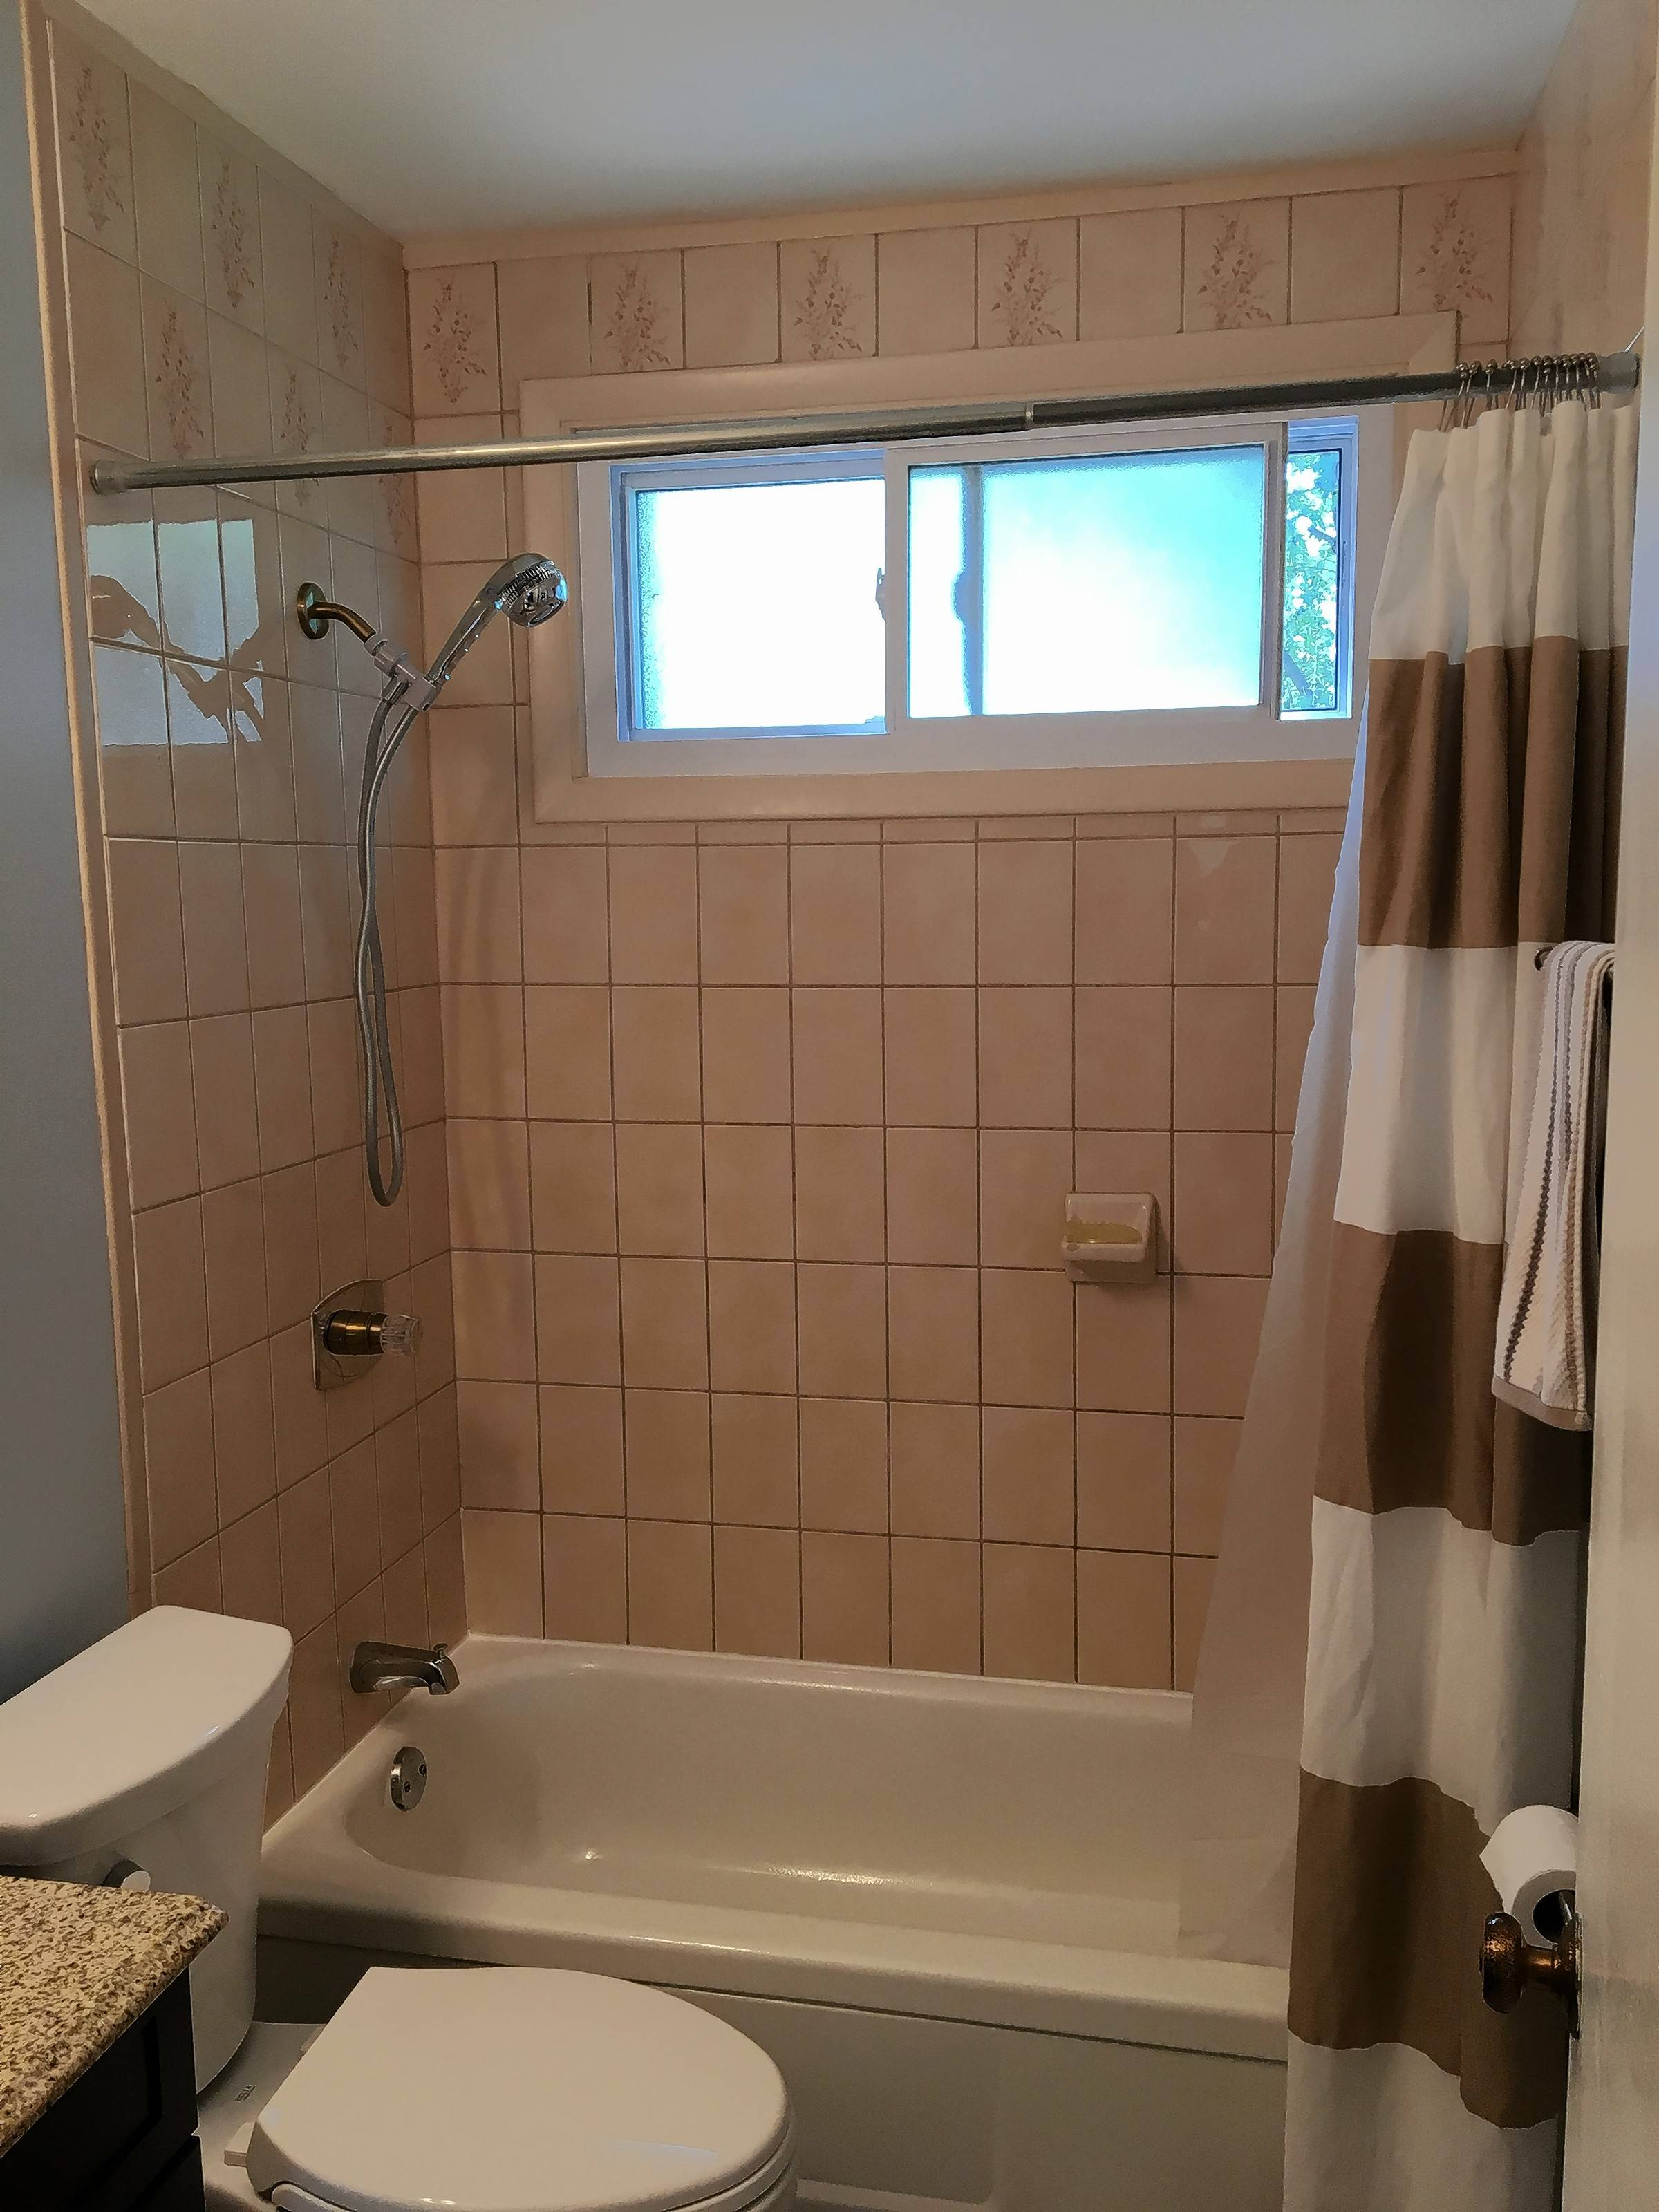 Laurie Salvano of Arlington Heights says her bathroom is original to the 48-year-old home and the bathroom is in need of an upgrade.